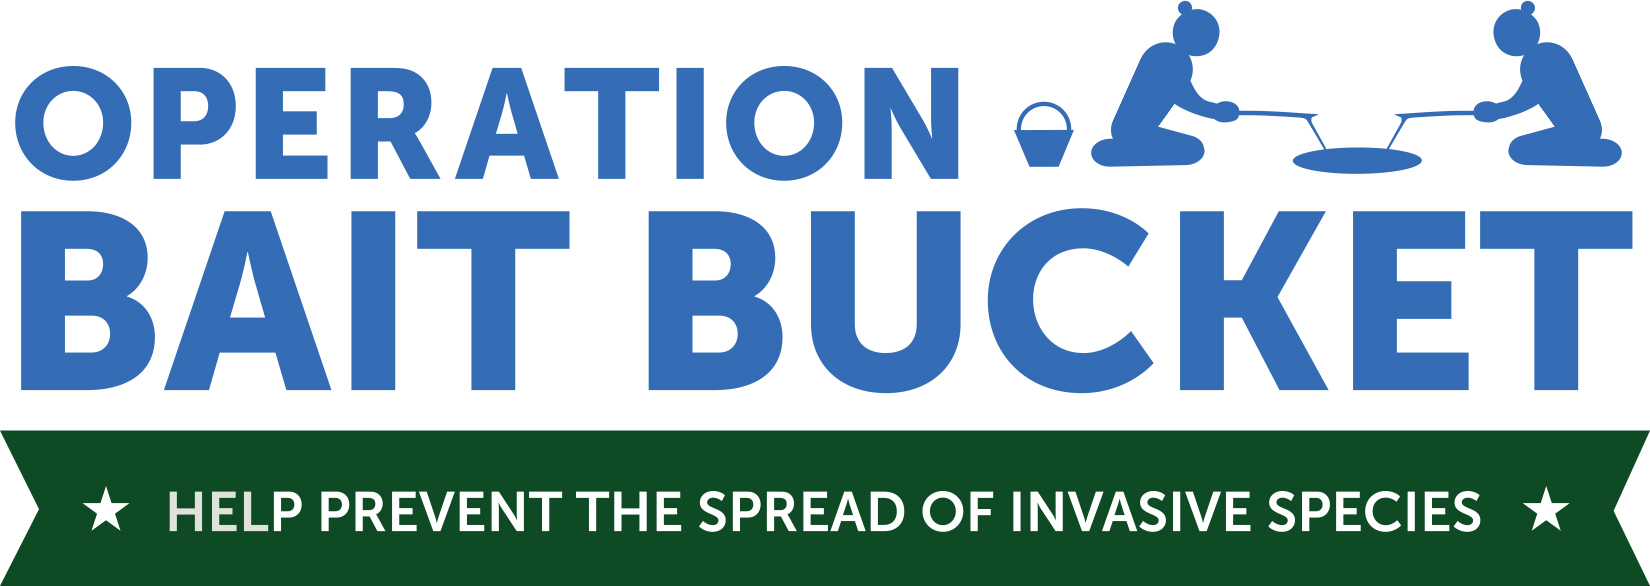 Image of the logo for Operation Bait Bucket shows two anglers with rods in fishing hole with the tag line 'Help Prevent the Spread of Invasive Species'